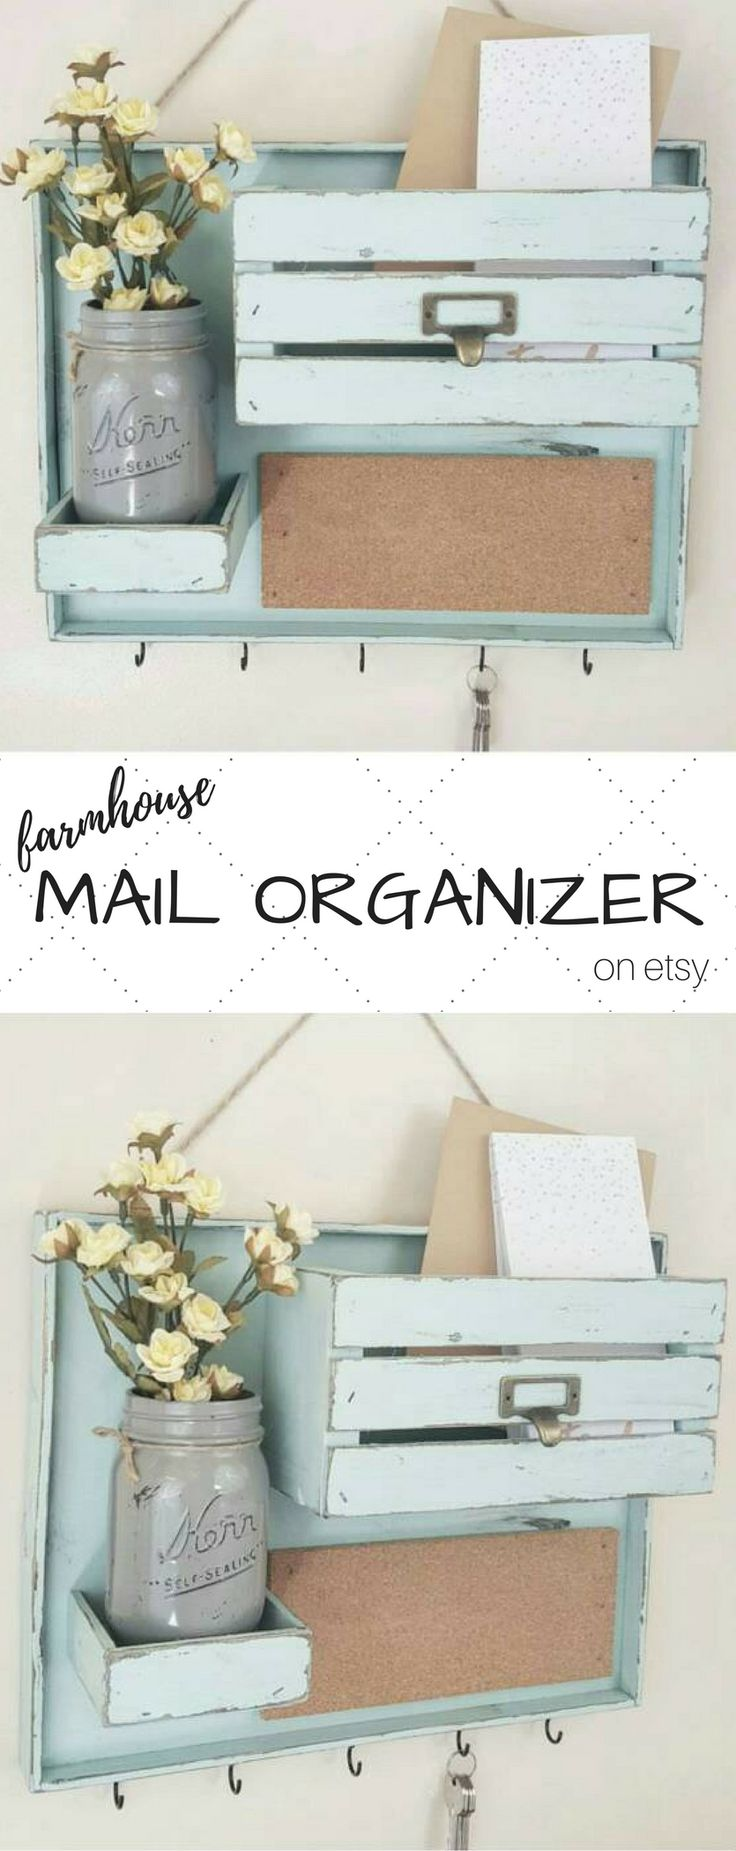 ADORABLE mail organizer on Etsy!!! {{Cottage Country Corner Shop}} This is perfect for the entryway or mudroom. What a great little place to store mail and keys! Because it's smaller, you don't even need a large entryway or mudroom ... you can hang it right on the wall by the door! LOVE this. {{ mail organizer - entryway organizer - command center - mail holder - key hanger - mud room ideas - farmhouse entry }}